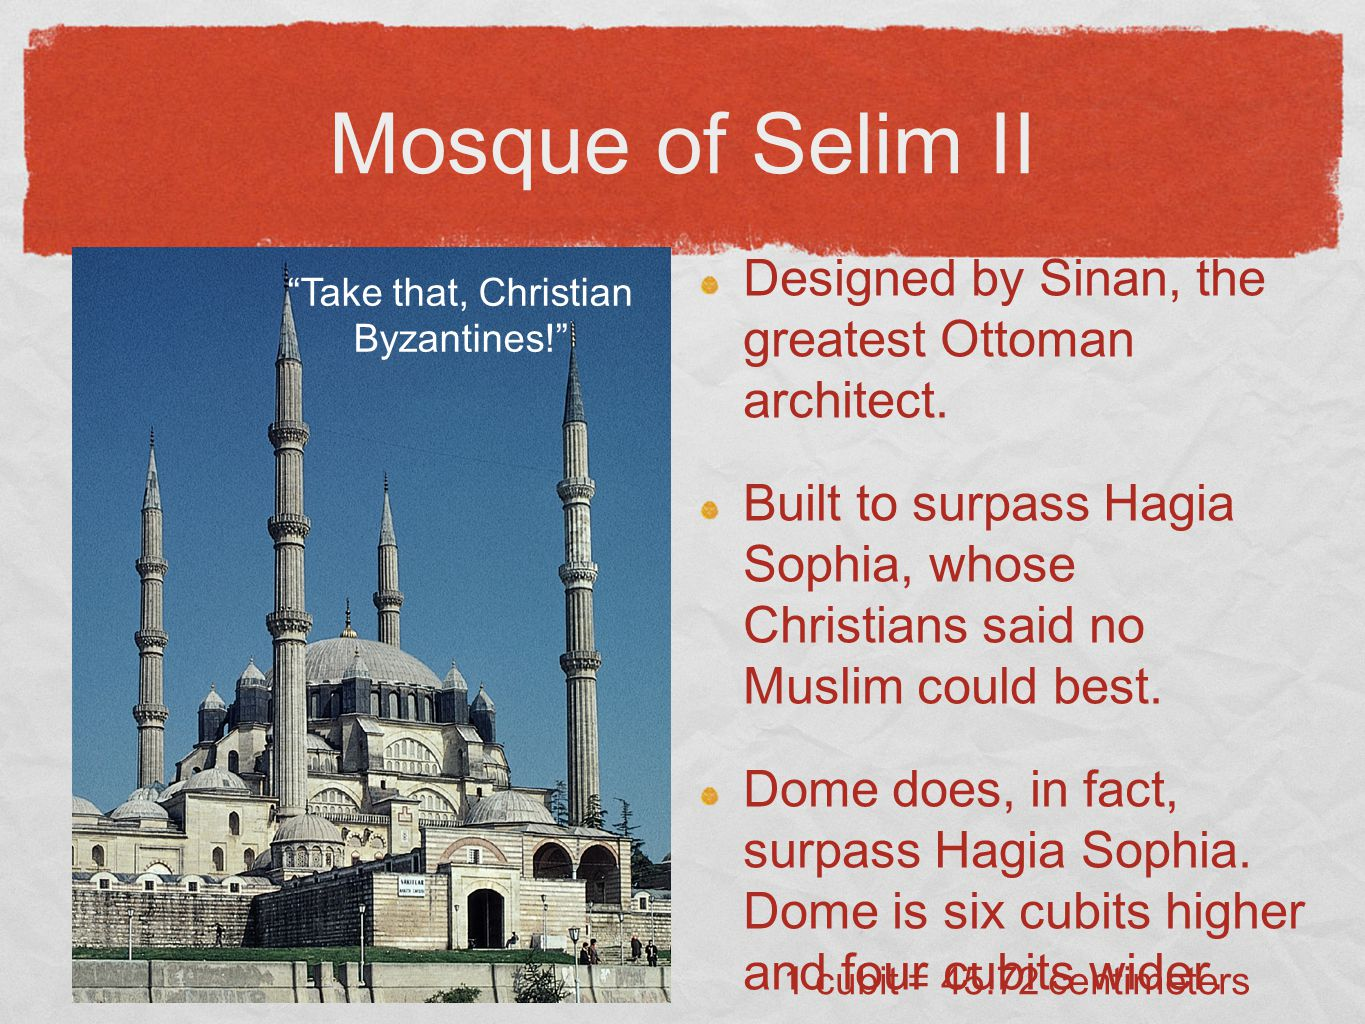 Mosque of Selim II Designed by Sinan, the greatest Ottoman architect.